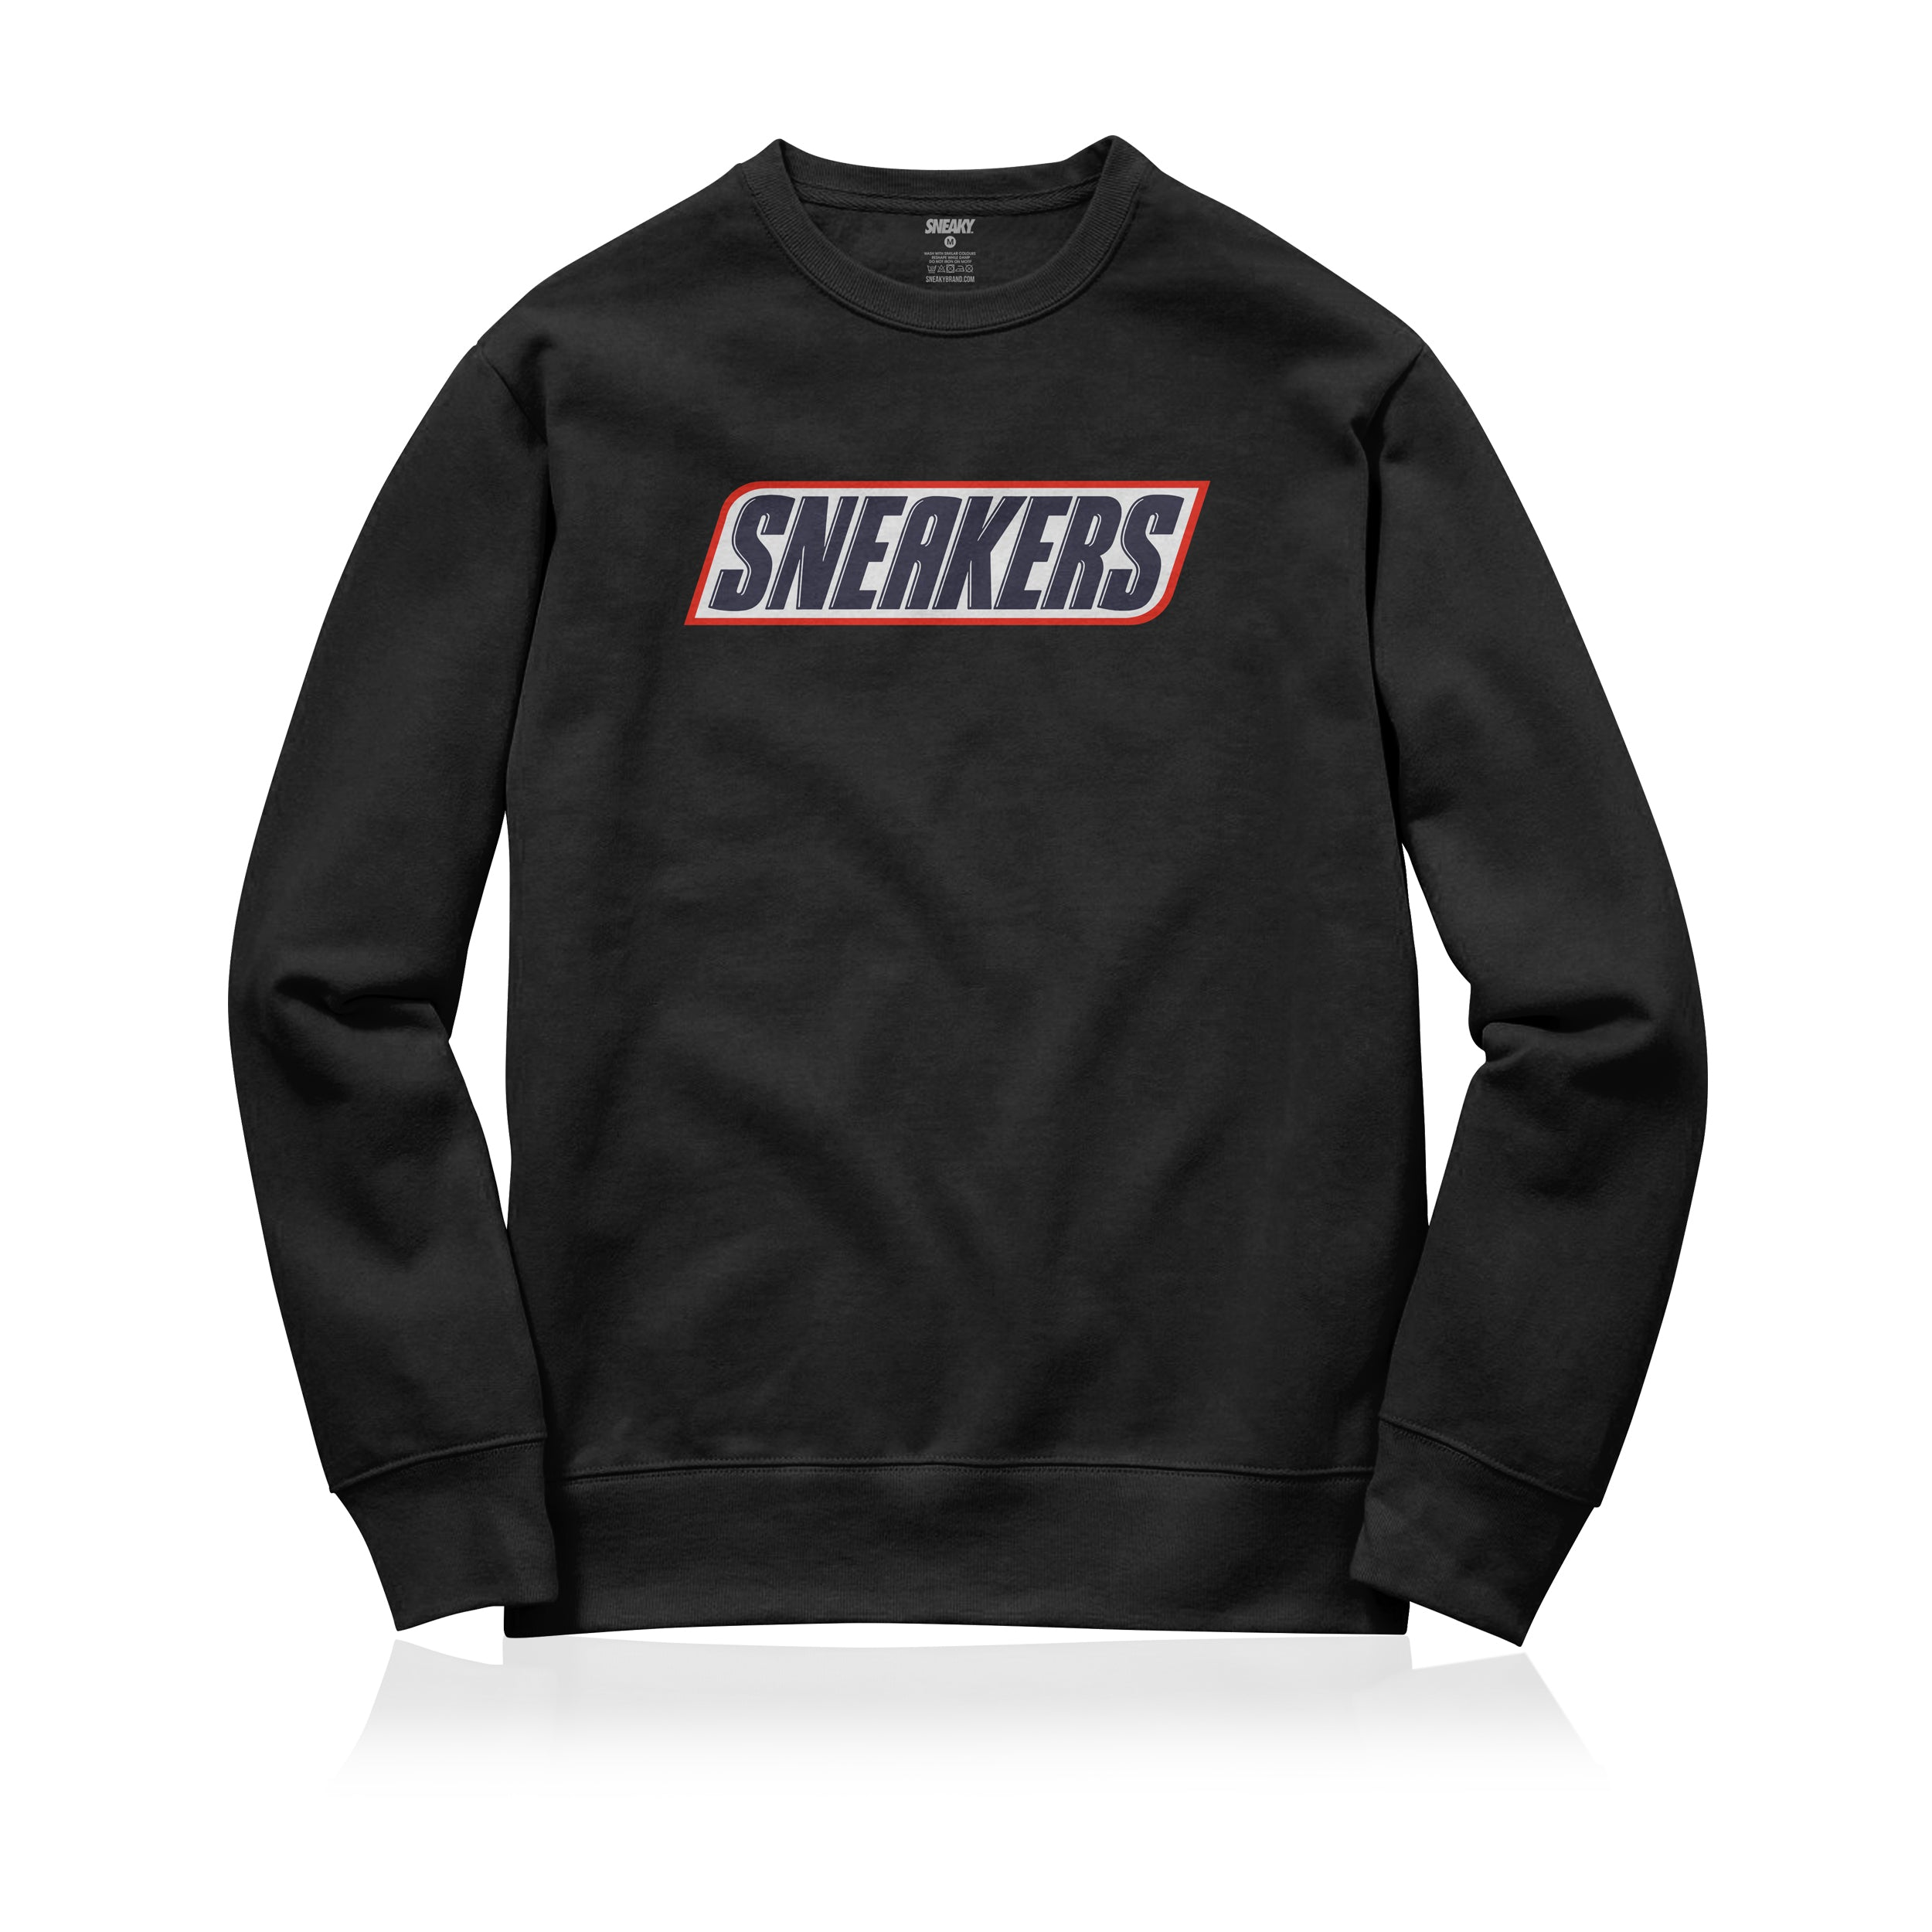 Sneaky Sneakers Bar Unisex Adult Sweatshirt Black